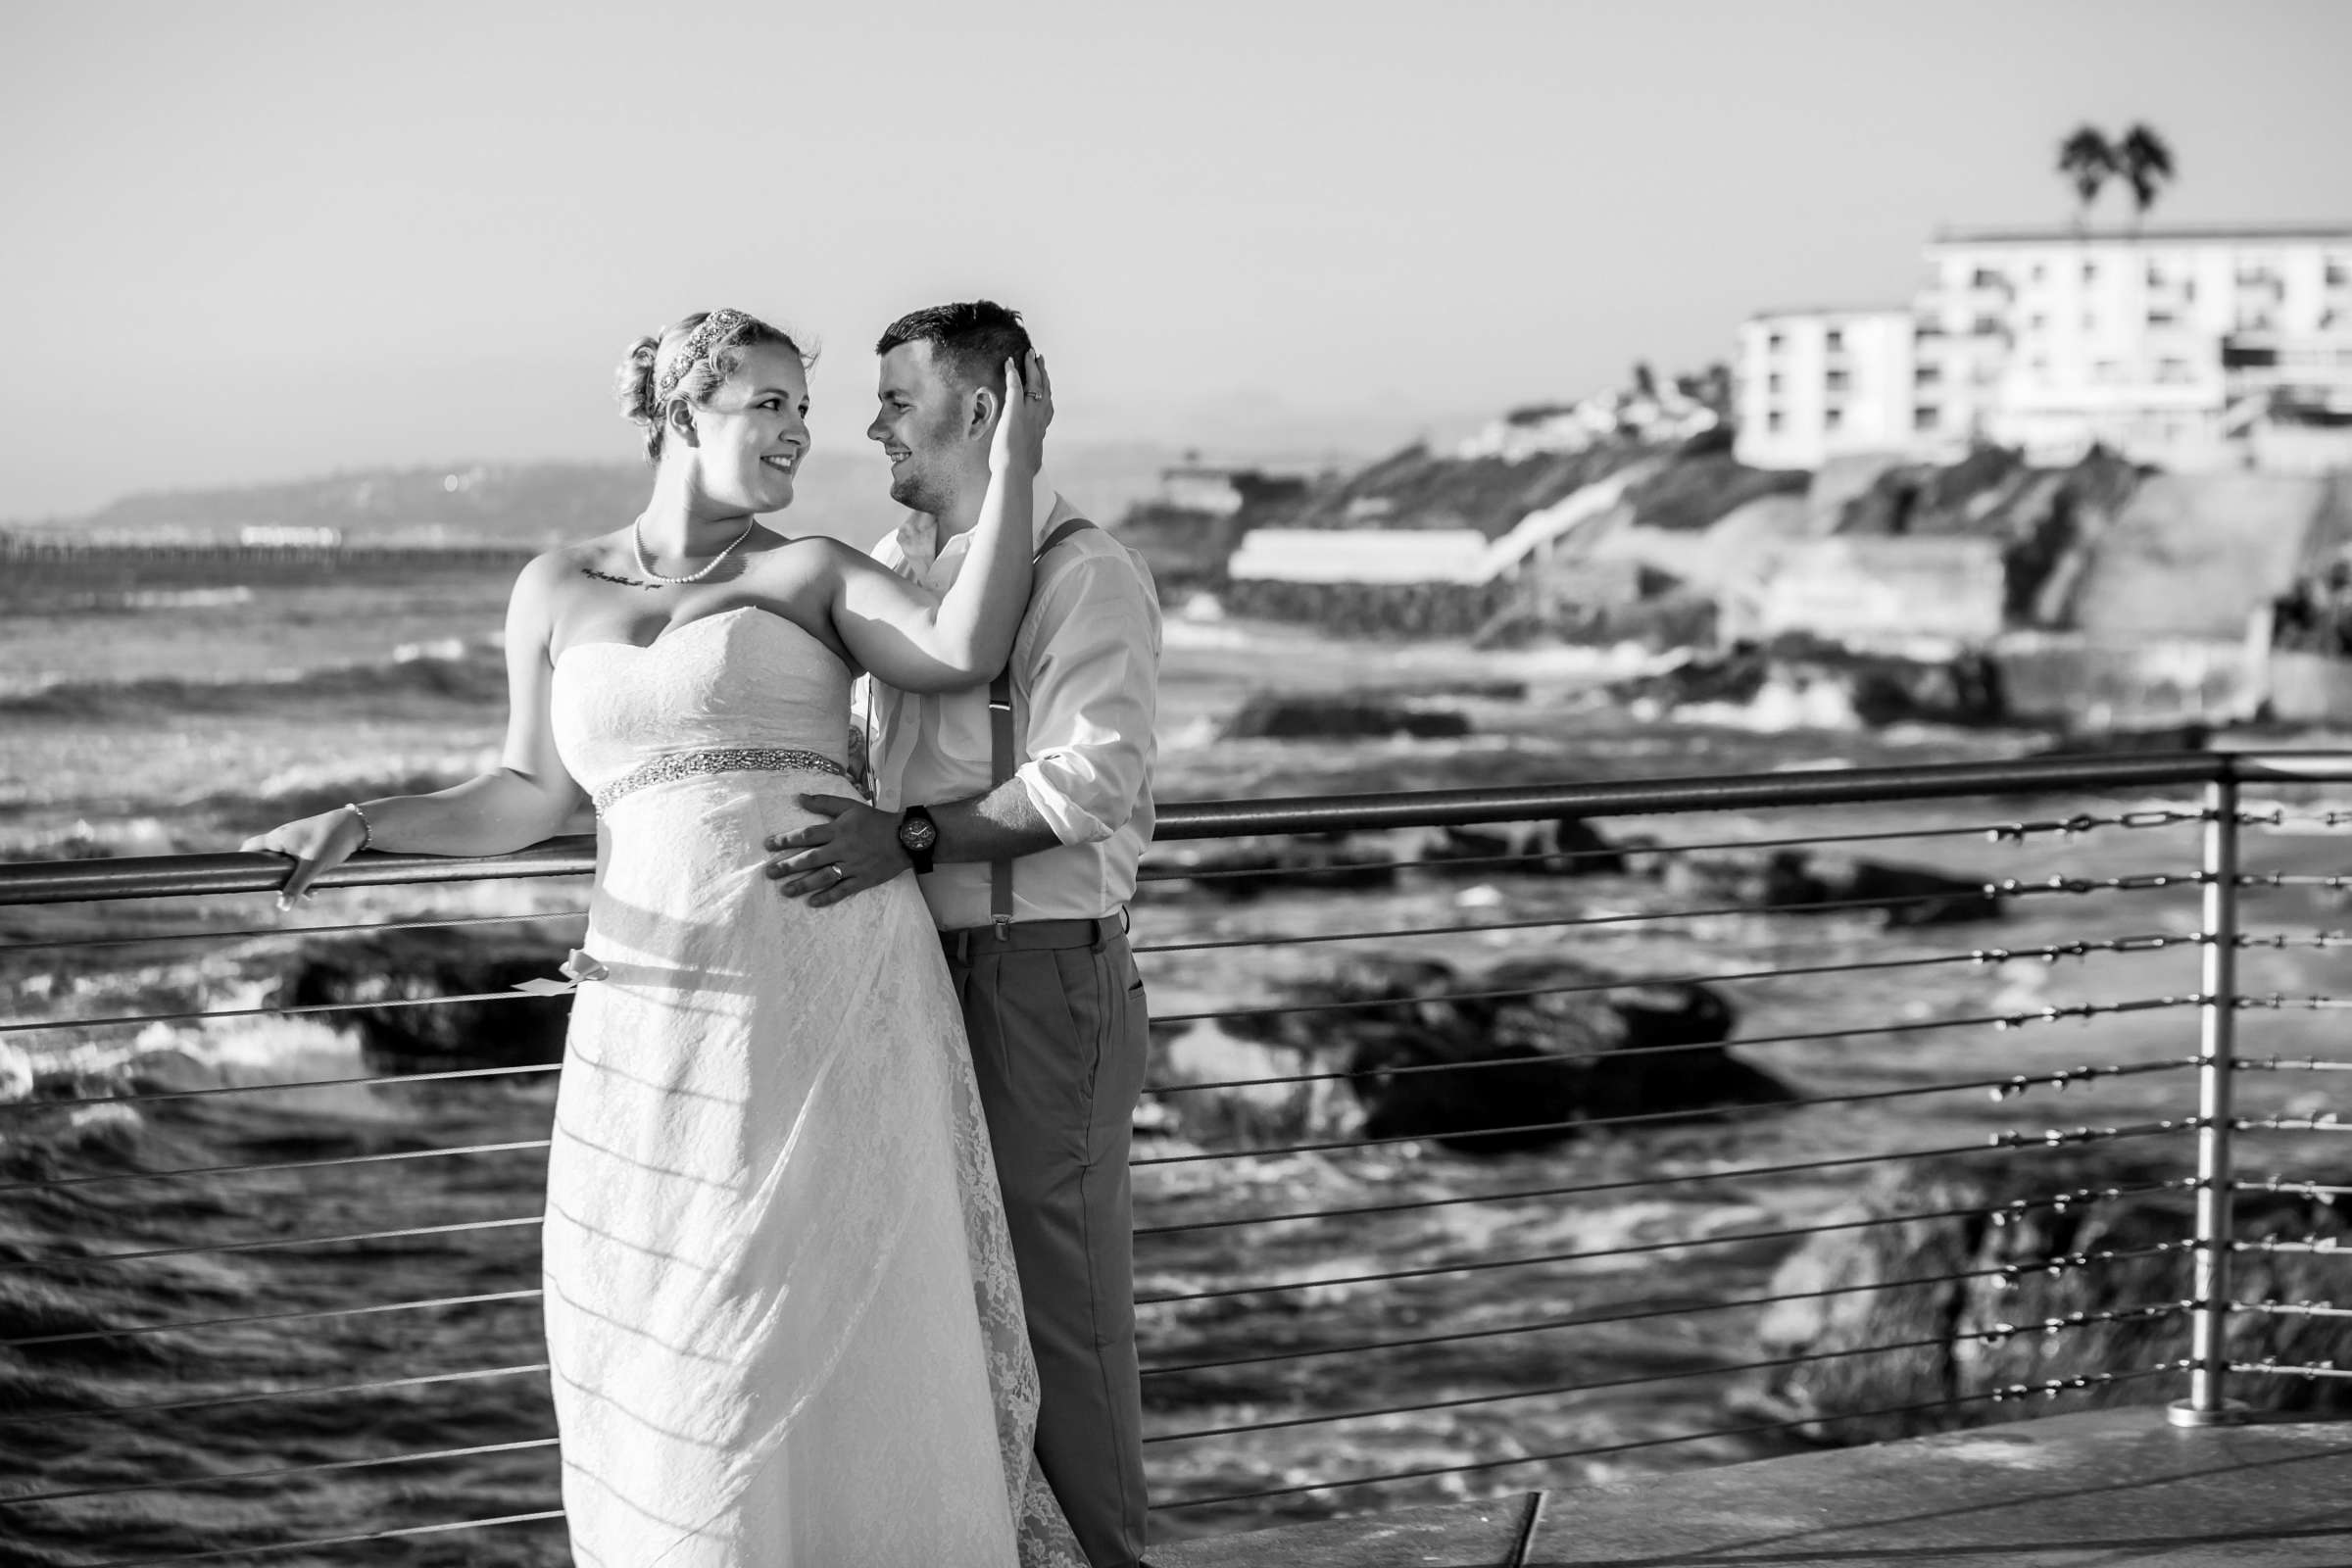 The Inn at Sunset Cliffs Wedding, Melinda and Benjamin Wedding Photo #20 by True Photography